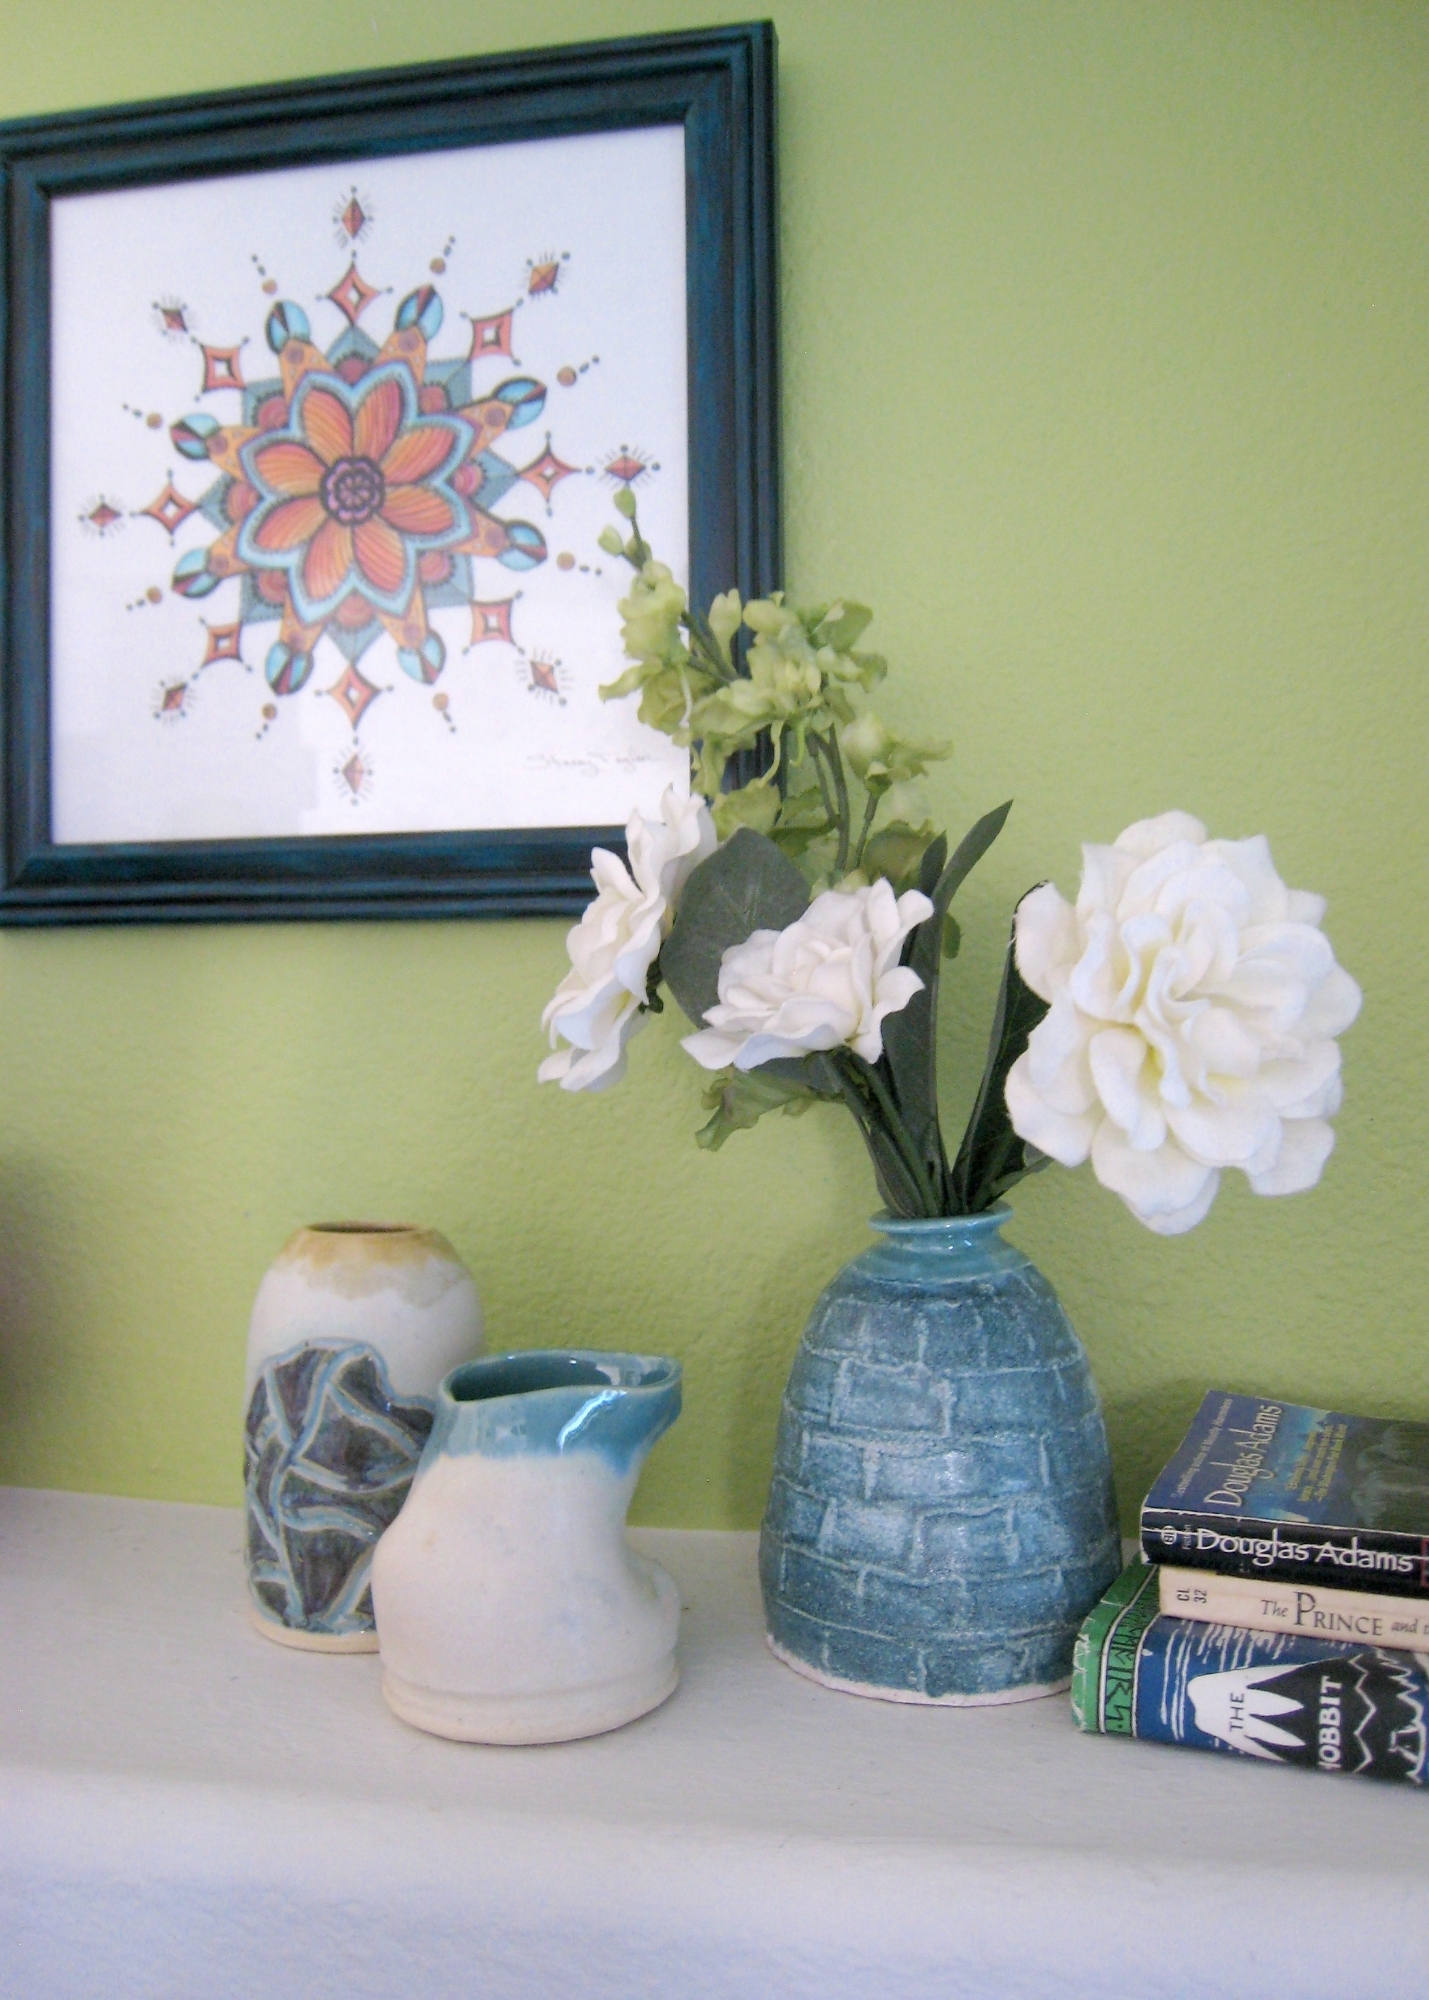 "Art & Styling by Stacey Taylor of Effortlessly Eclectic  ""Diamond Flower Mandala"" wall art  ""Map Vase in Cream, Light Blue, & Sage"" pottery  ""Squished Bud Vase in Soft White & Robin's Egg Blue"" pottery  ""Blue Bottle"" pottery"